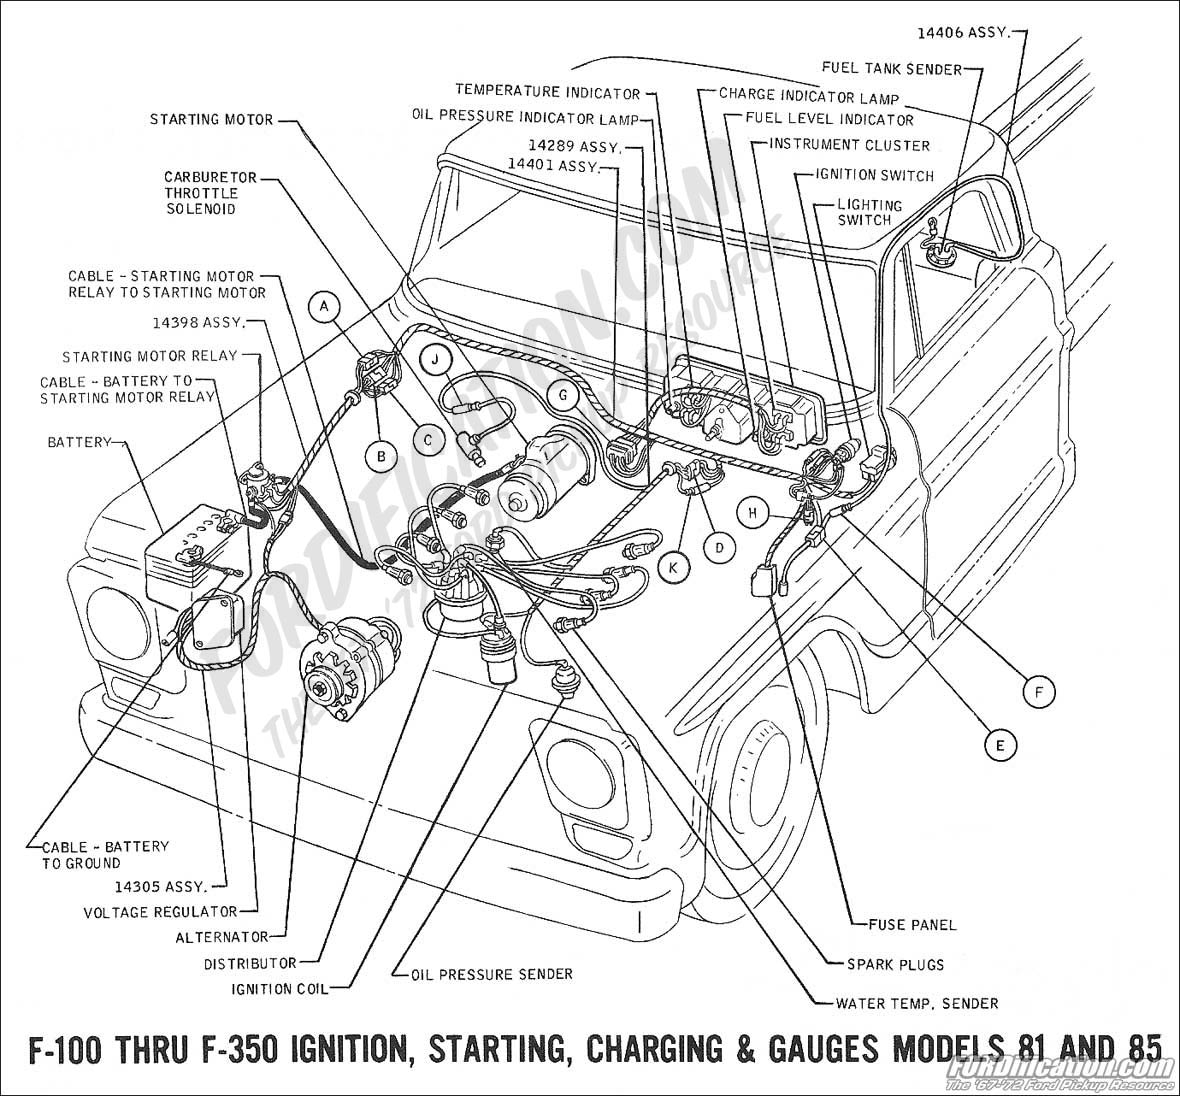 Wiring Harness Together With Ford F 250 Turn Signal Diagram 1968 Starter Just Another Dist Simple Diagrams Rh 8 Zahnaerztin Carstens De Dodge Magnum 2001 Super Duty